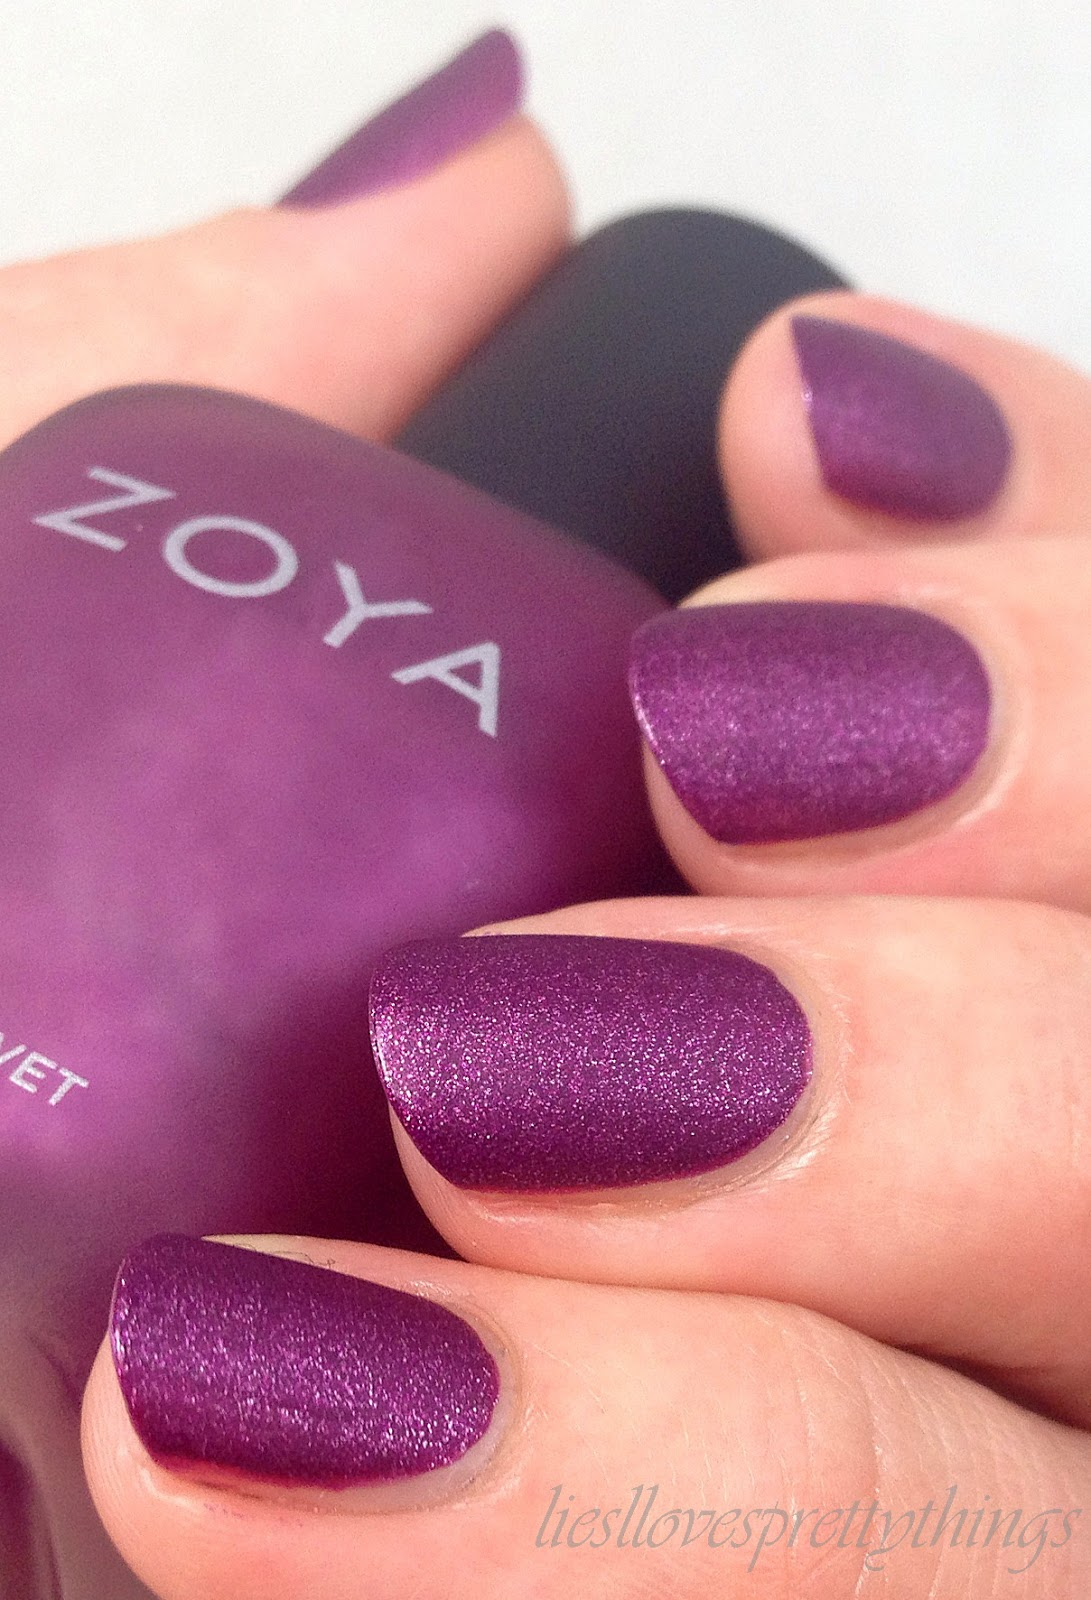 Zoya Harlow, Matte Velvet Collection swatch and review